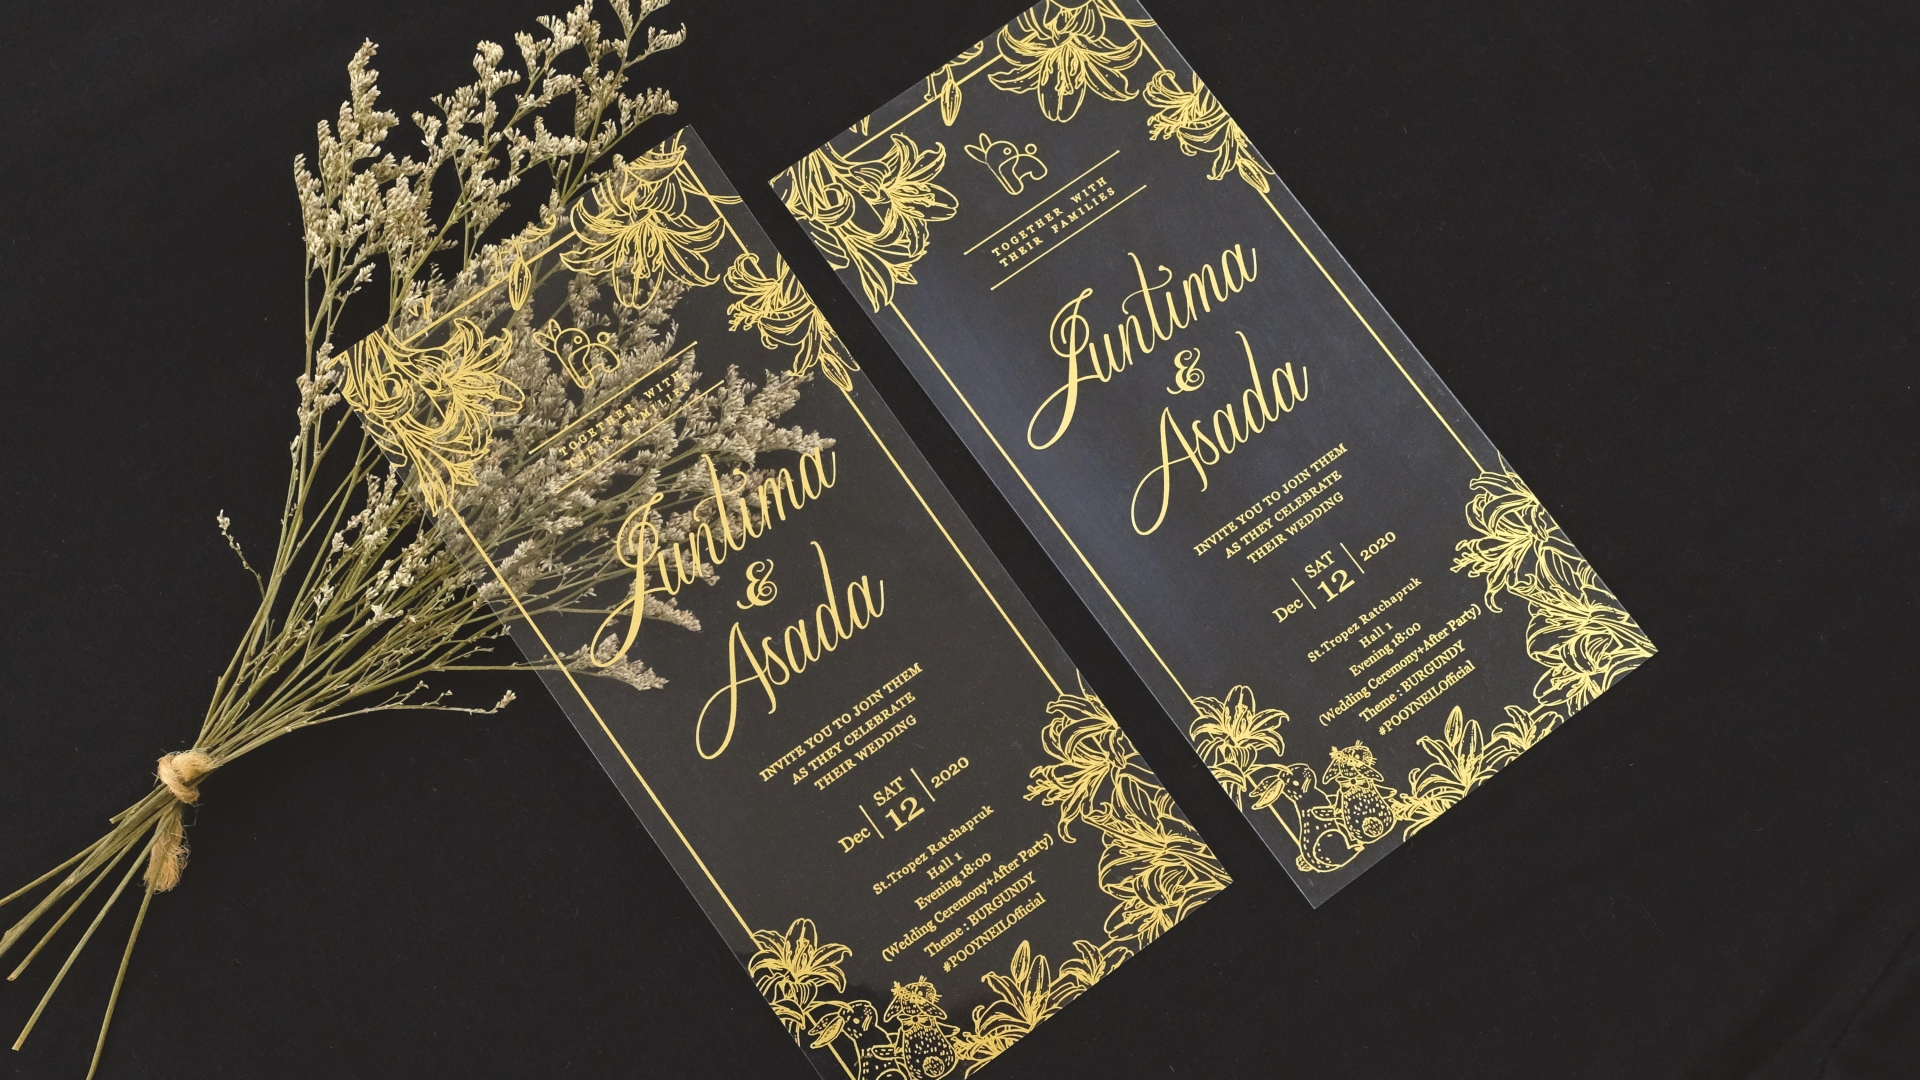 Portfolio A256LM ... Transparent Cards with Golden Brown Foil Stamping ... So Luxurious